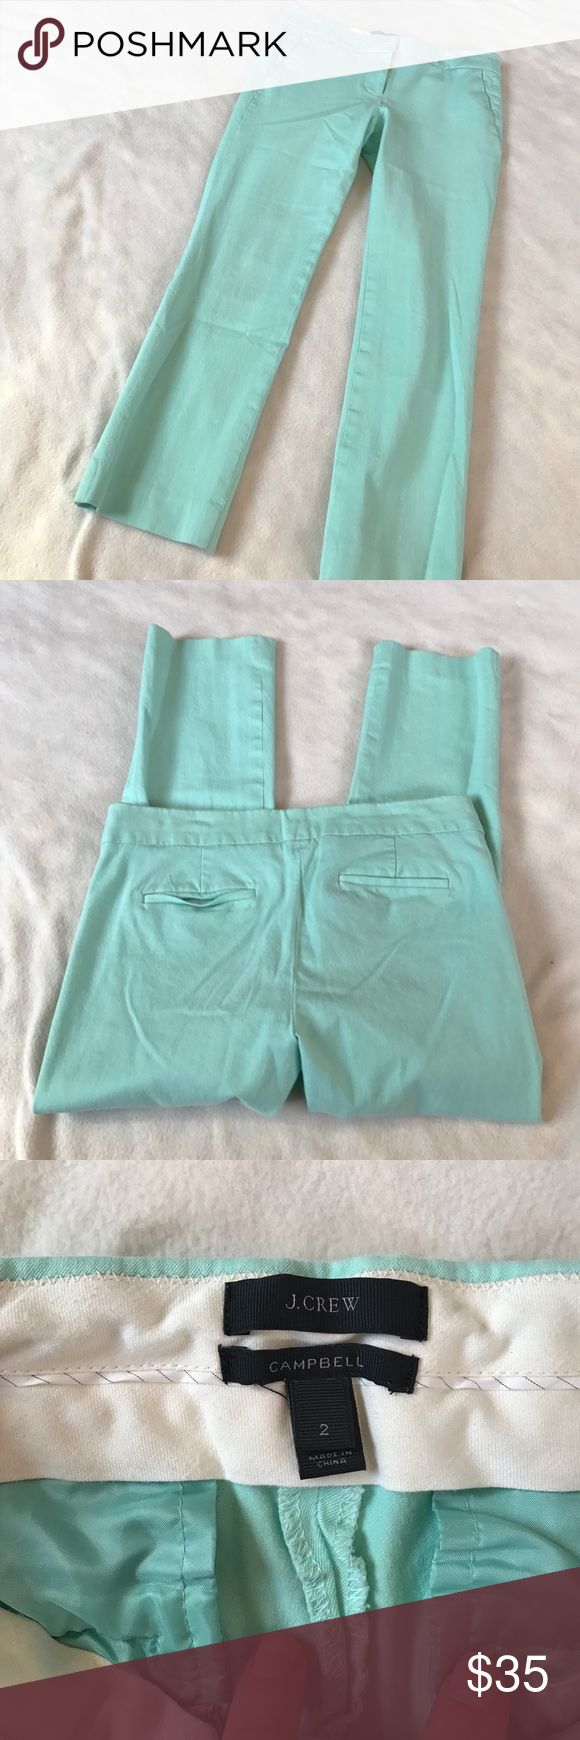 """J Crew Mint Campbell Capri Pant 24.5"""" inseam. Campbell Capri pant in stretch cotton. Sits just above hip, cropped straight leg. Perfect amount of stretch. Excellent condition. Soft mint color, model is wearing same style just different color. Bundle 2 or more items for a discount J. Crew Pants Ankle & Cropped"""